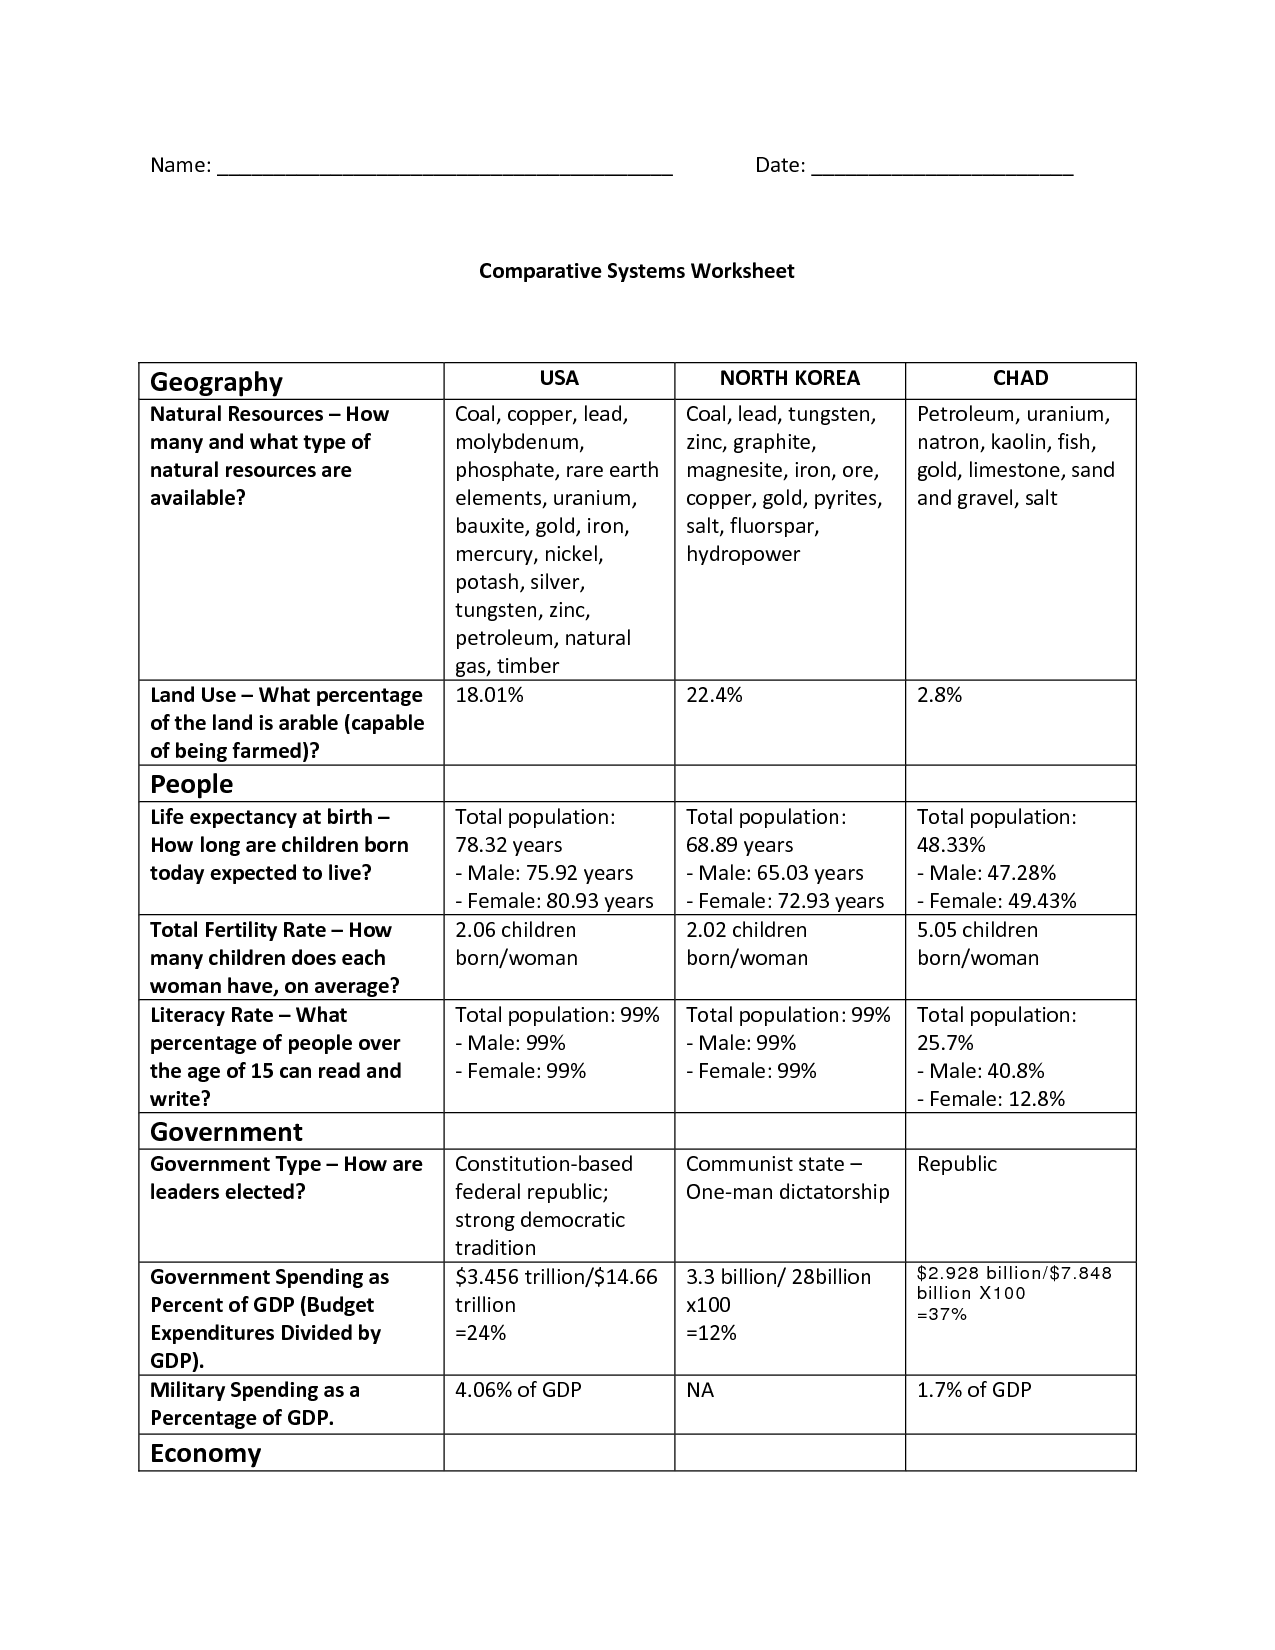 Paring Economic Systems Worksheet